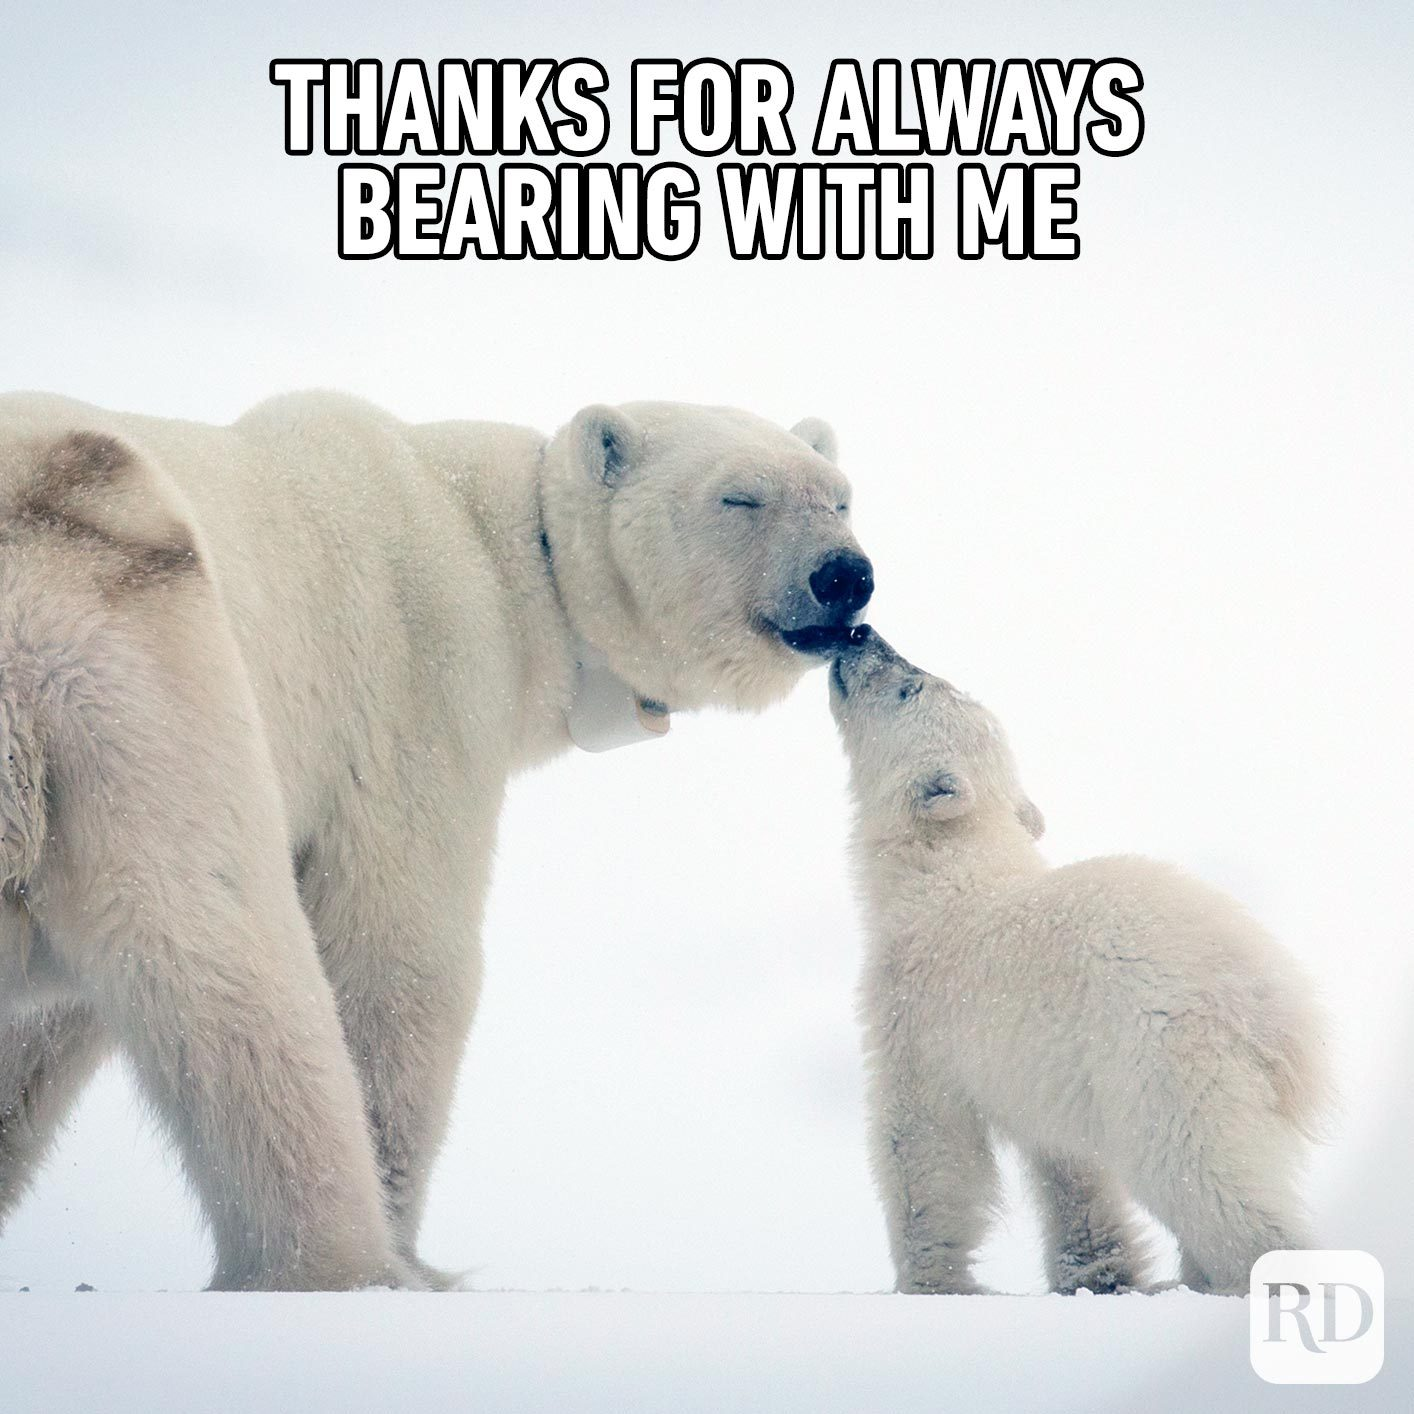 Polar bear father and child. Meme text: Thanks for always bearing with me